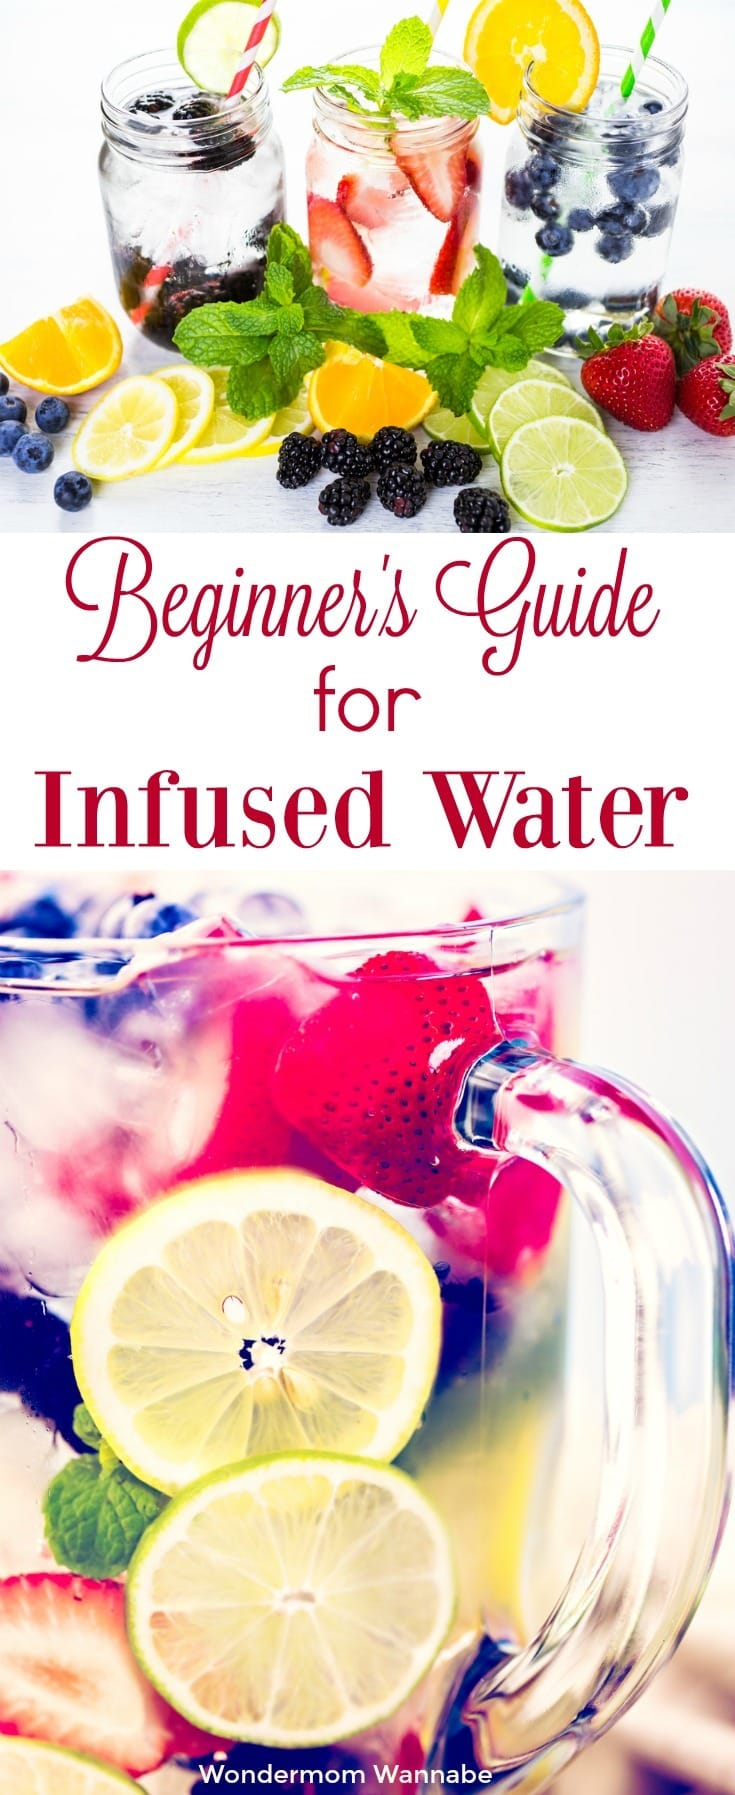 This beginner's guide to infused water walks you through everything you need to know to get started, including tips and ideal starting ingredients. #infusedwater #flavoredwater #howtoguide #beginnersguide via @wondermomwannab